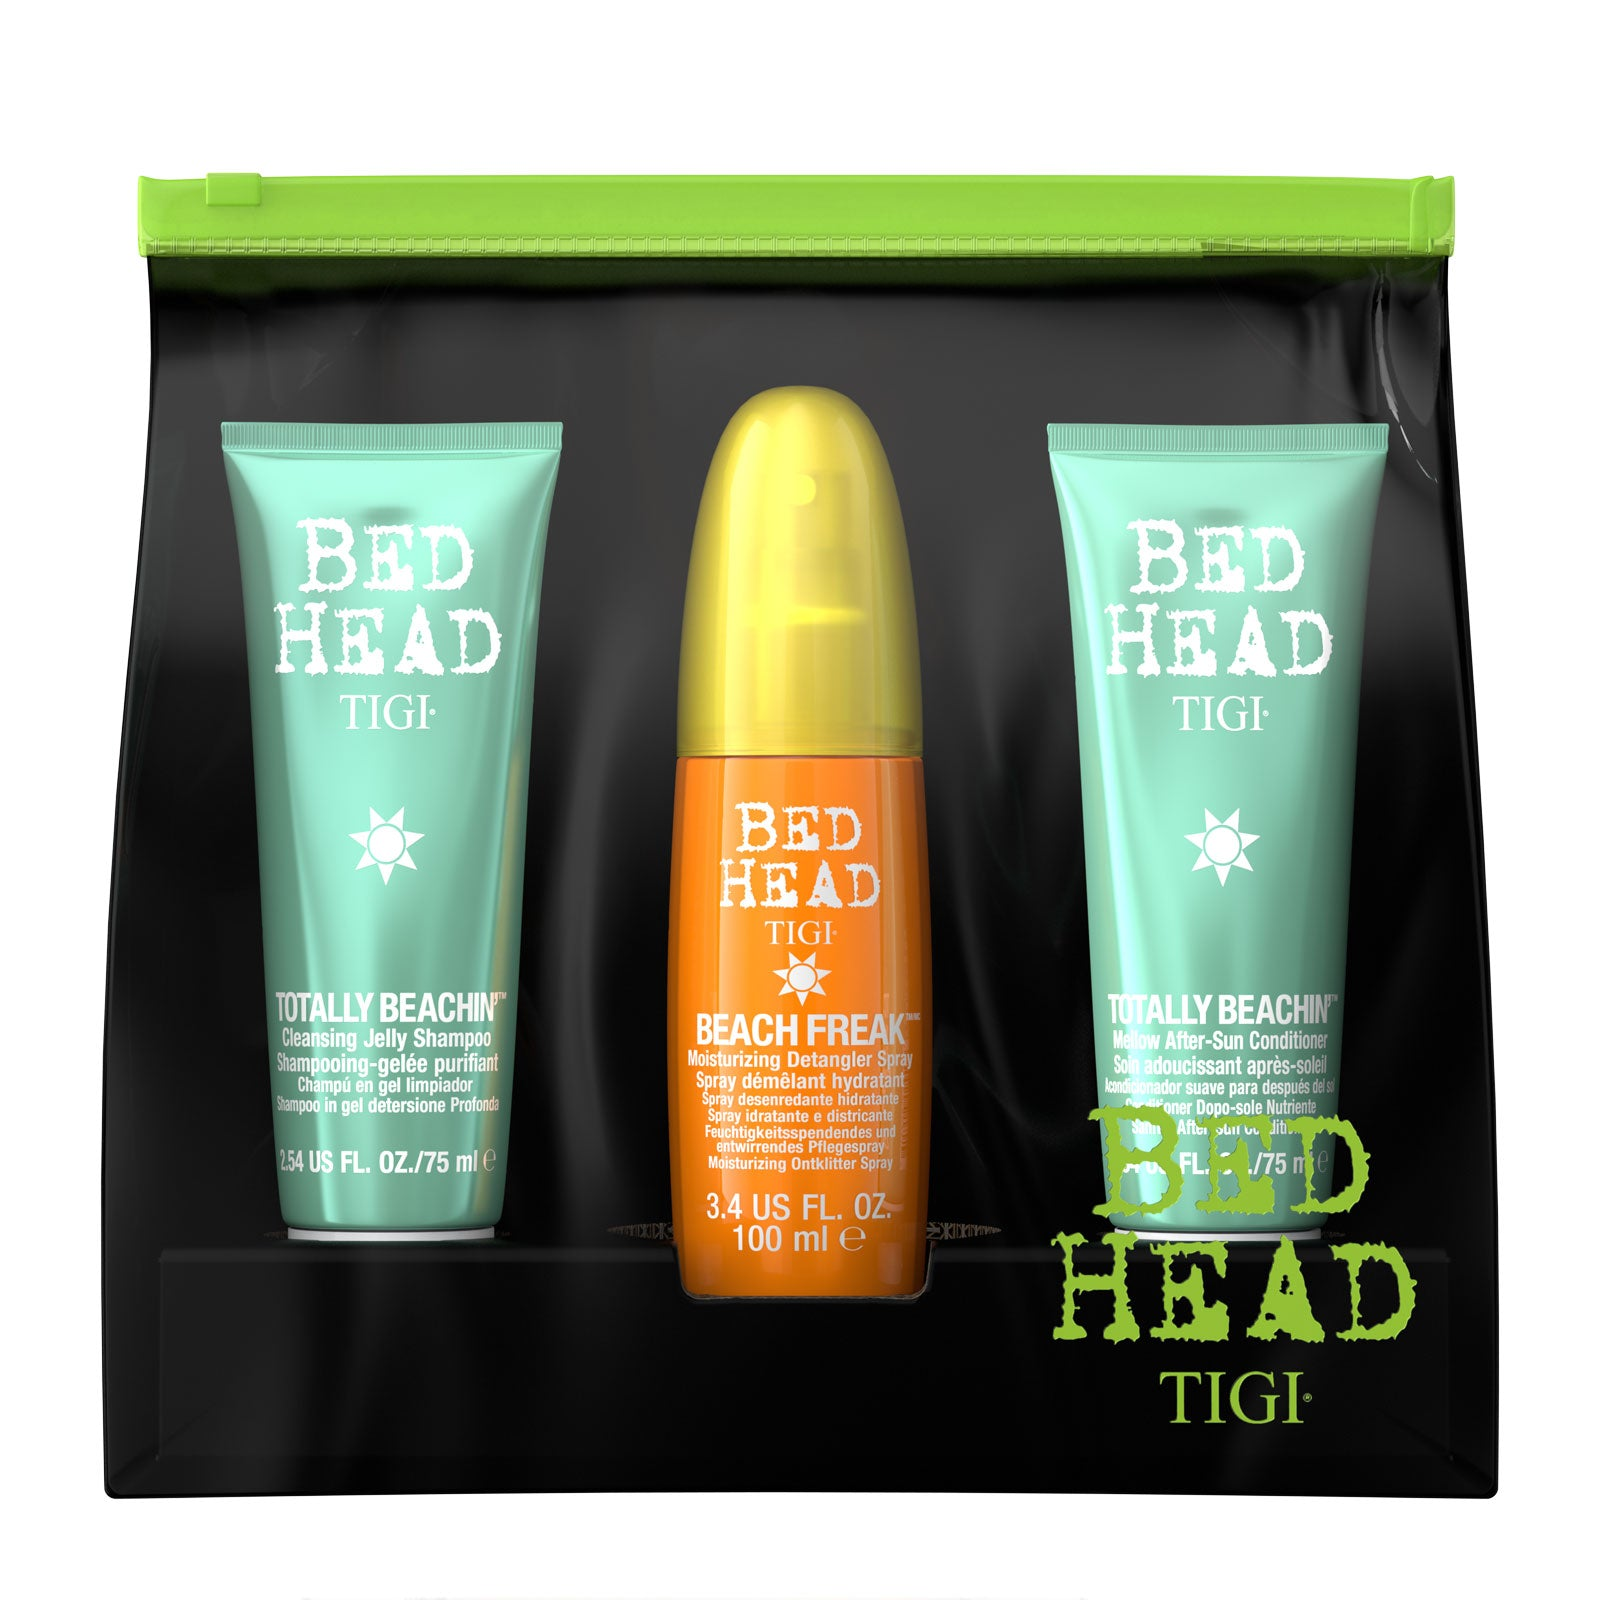 Bed Head by Tigi Travel Shampoo Conditioner Detangler Spray Toiletry Bag Set